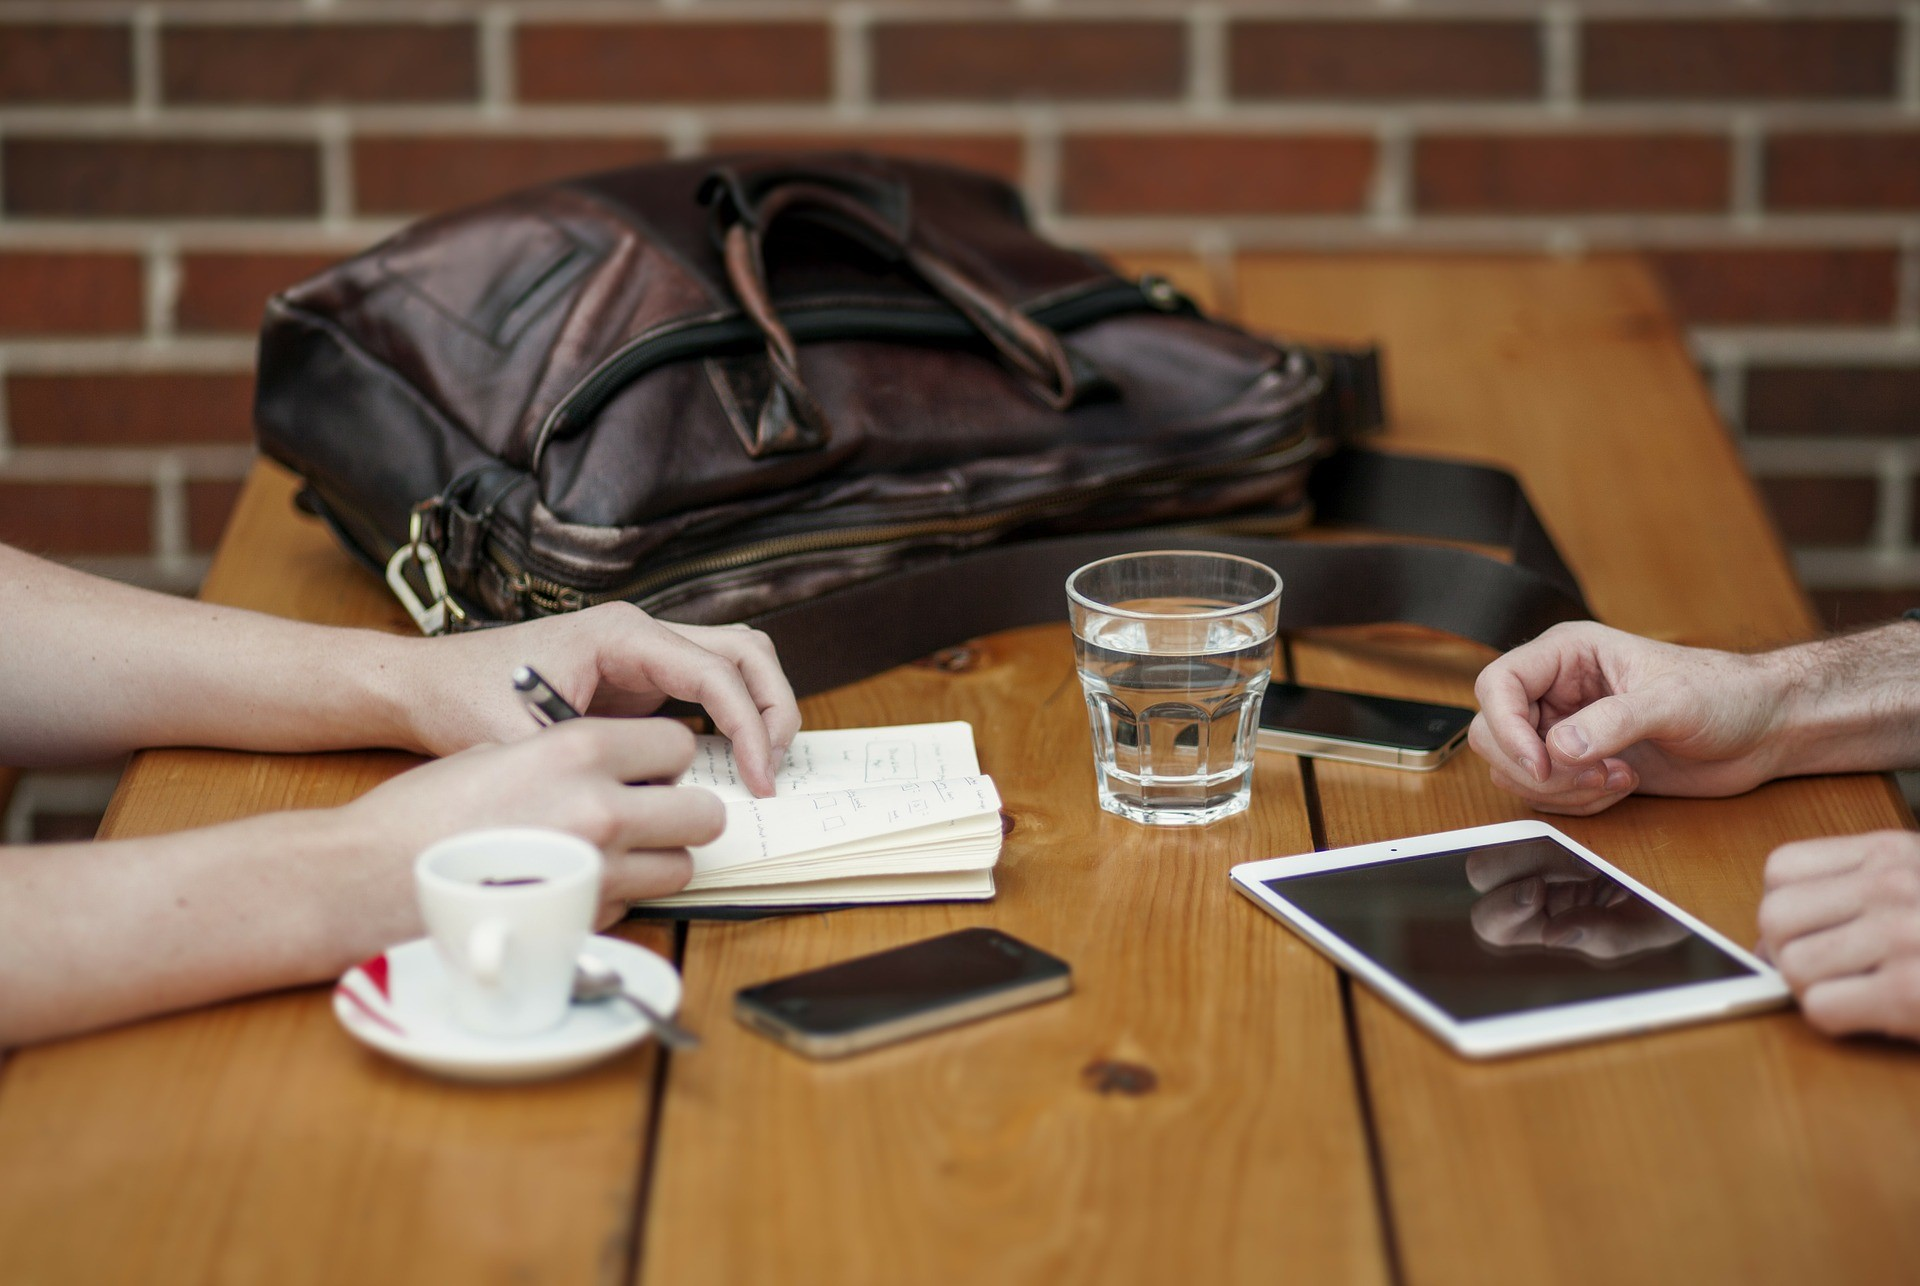 Two people sit opposite each other in a sales conversation at a table with drinks, mobile devices, a bag and a notebook arrayed on top.